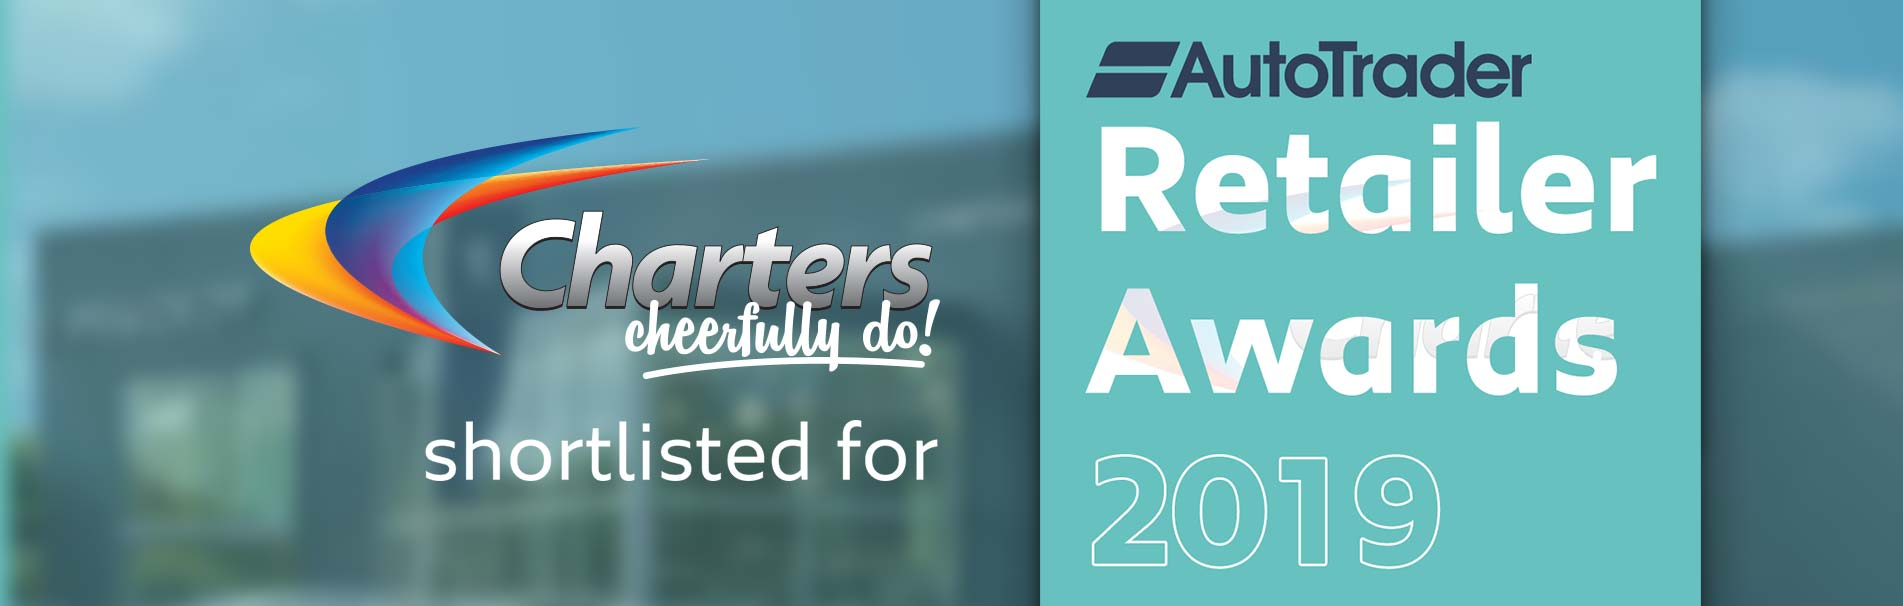 aldershot-car-dealership-shortlisted-for-autotrader-retailer-of-the-year-awards-2019-sli